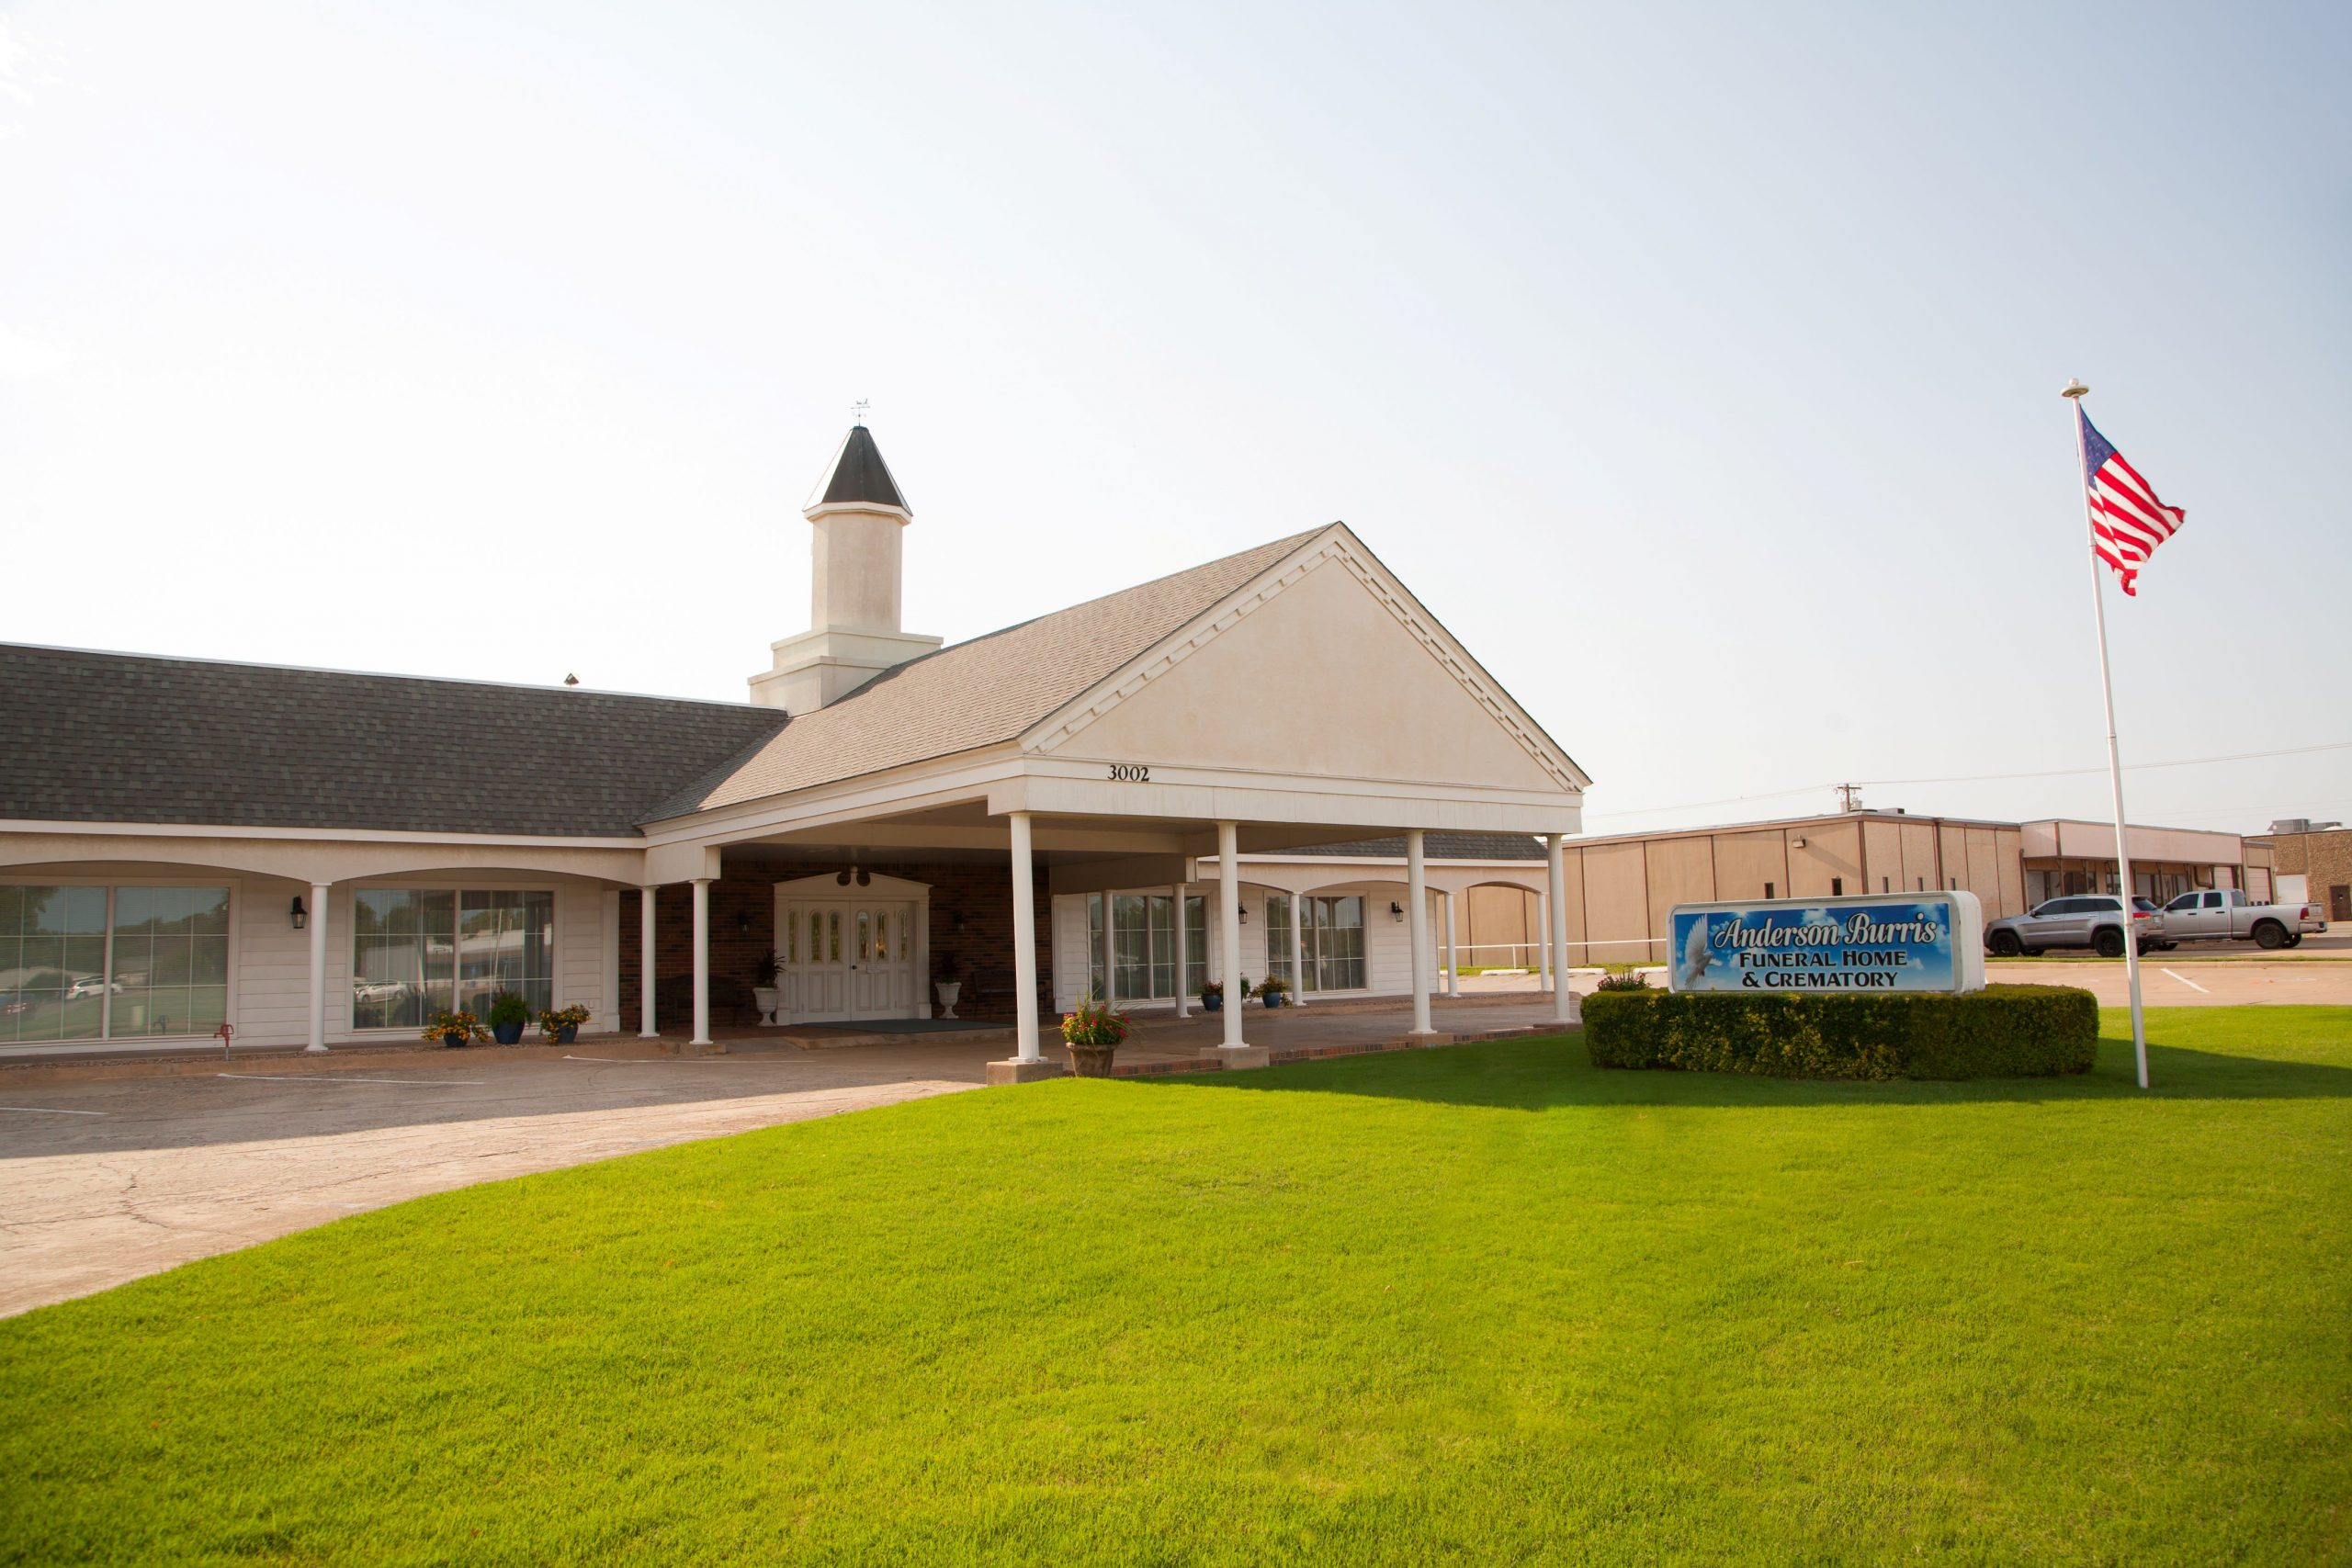 Funeral Homes in Enid Oklahoma